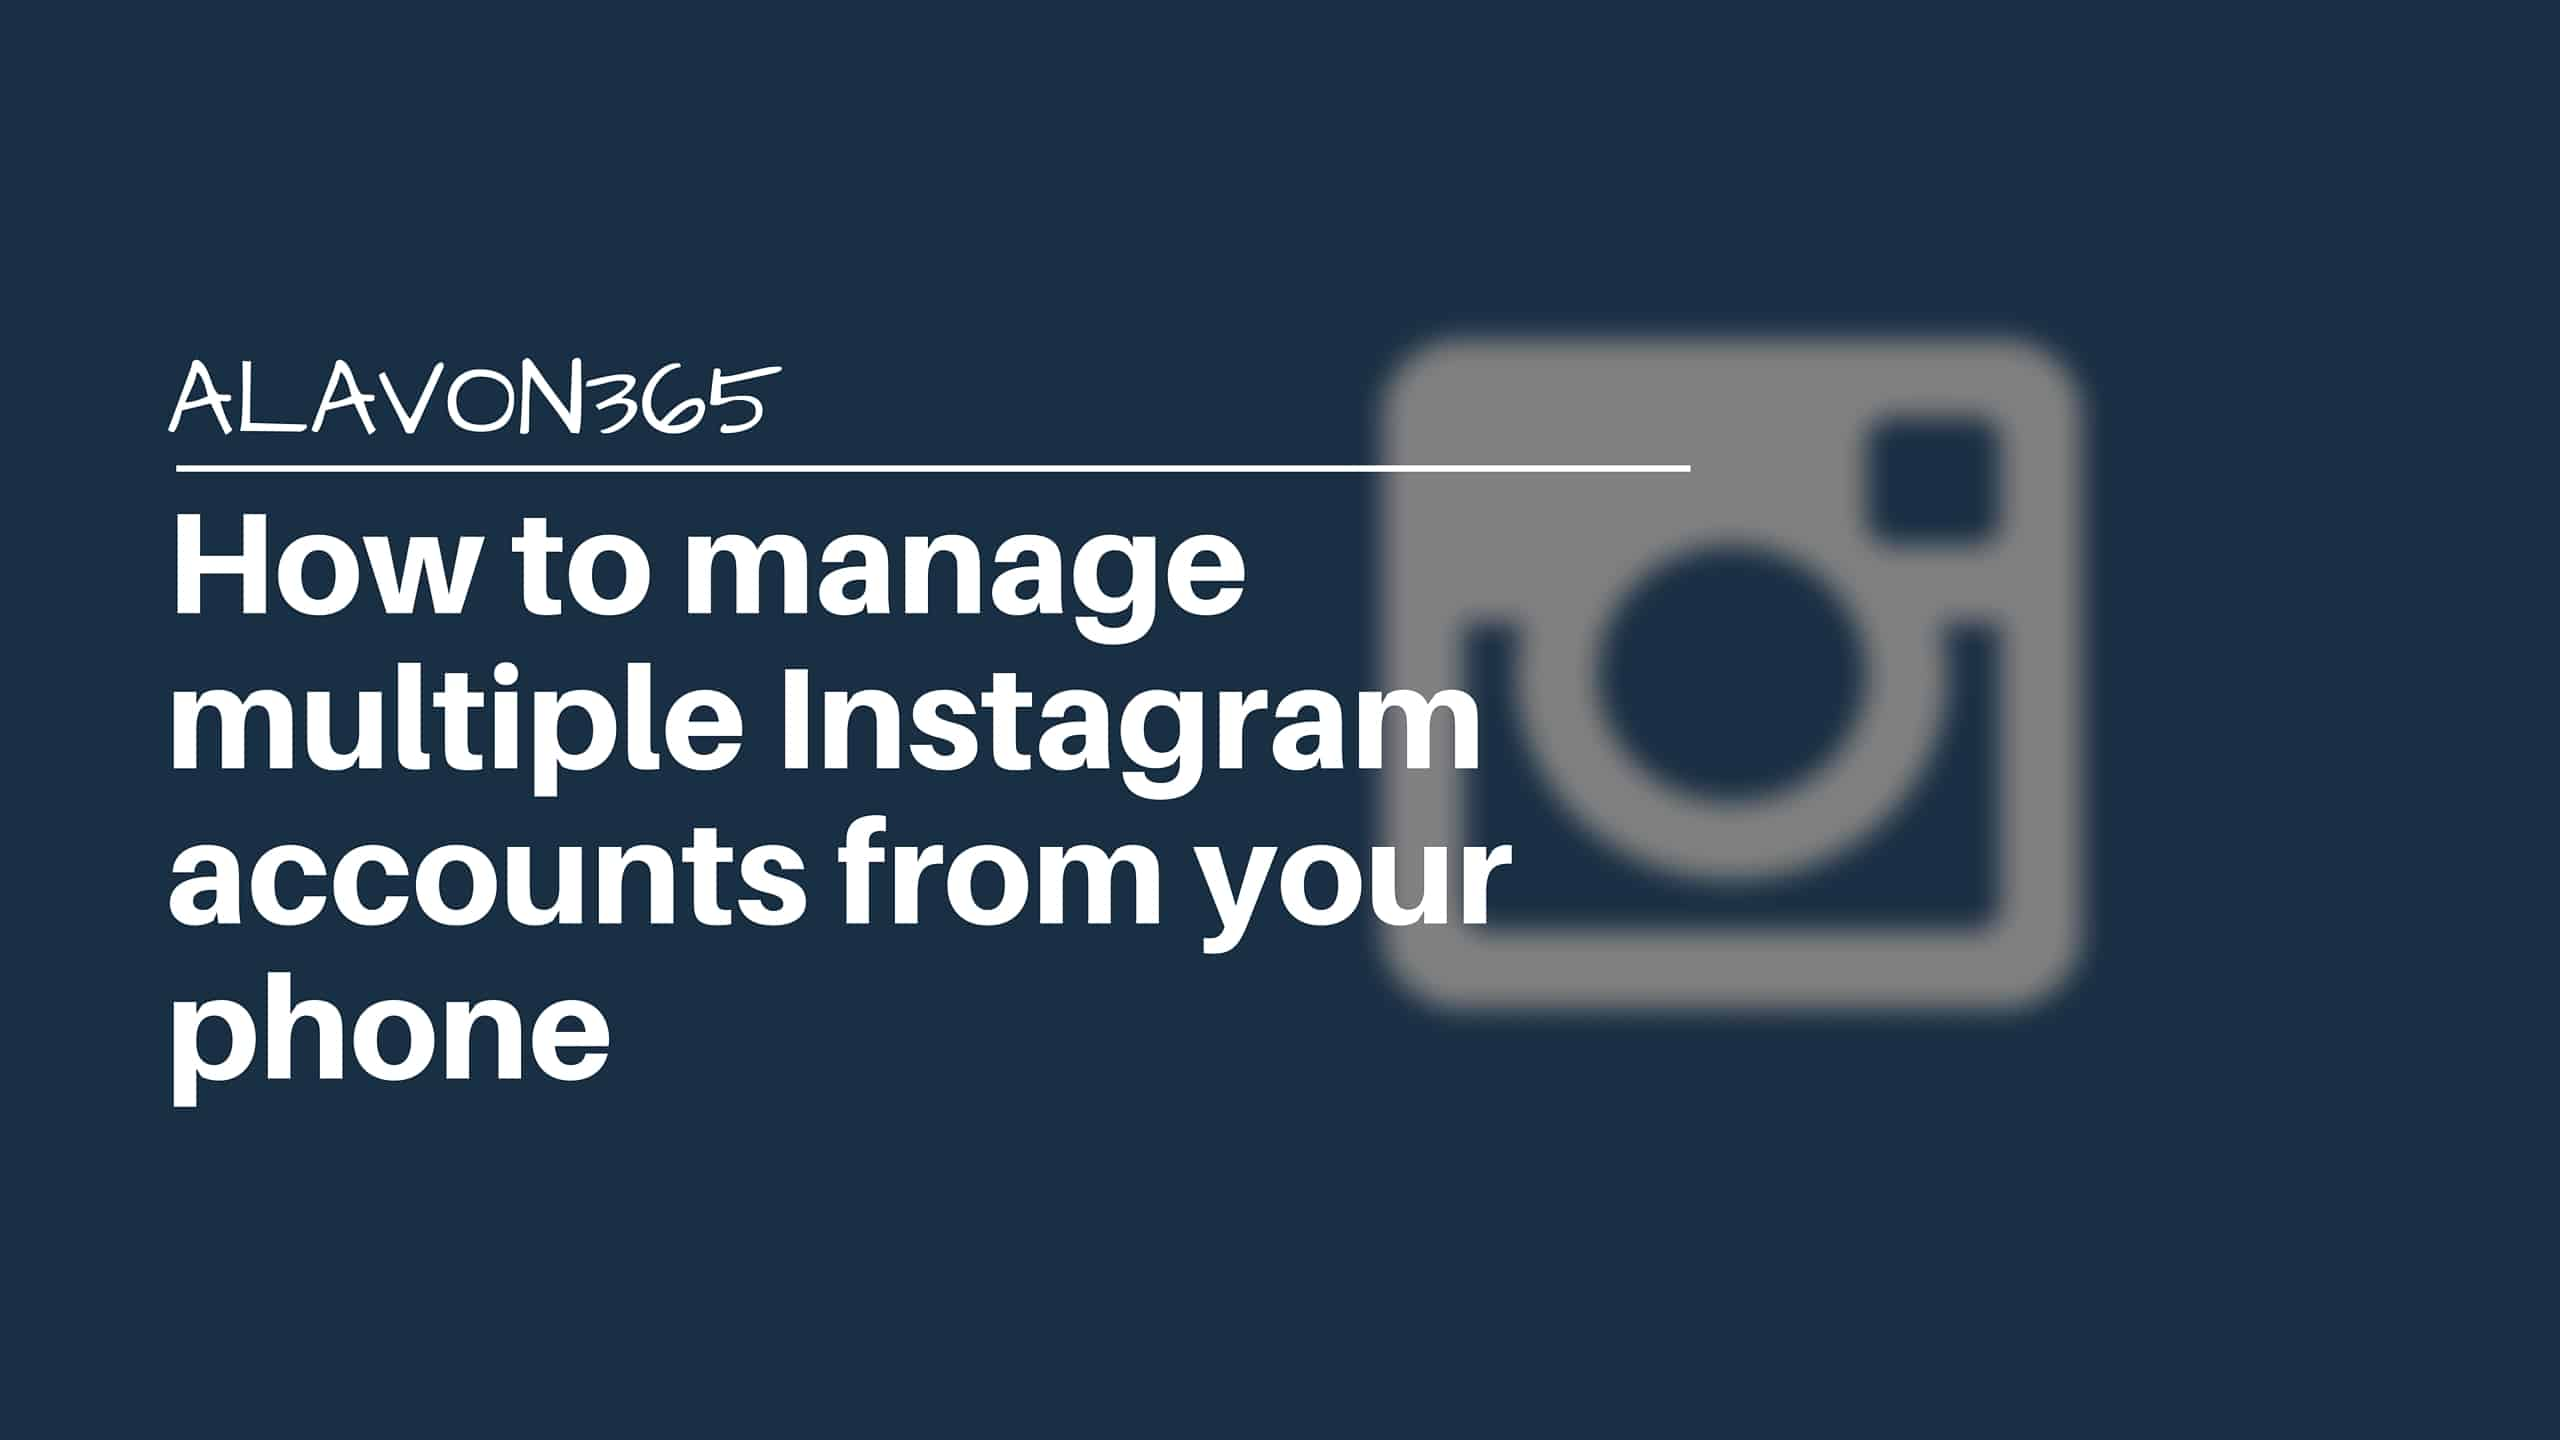 How to manage multiple Instagram accounts from your phone